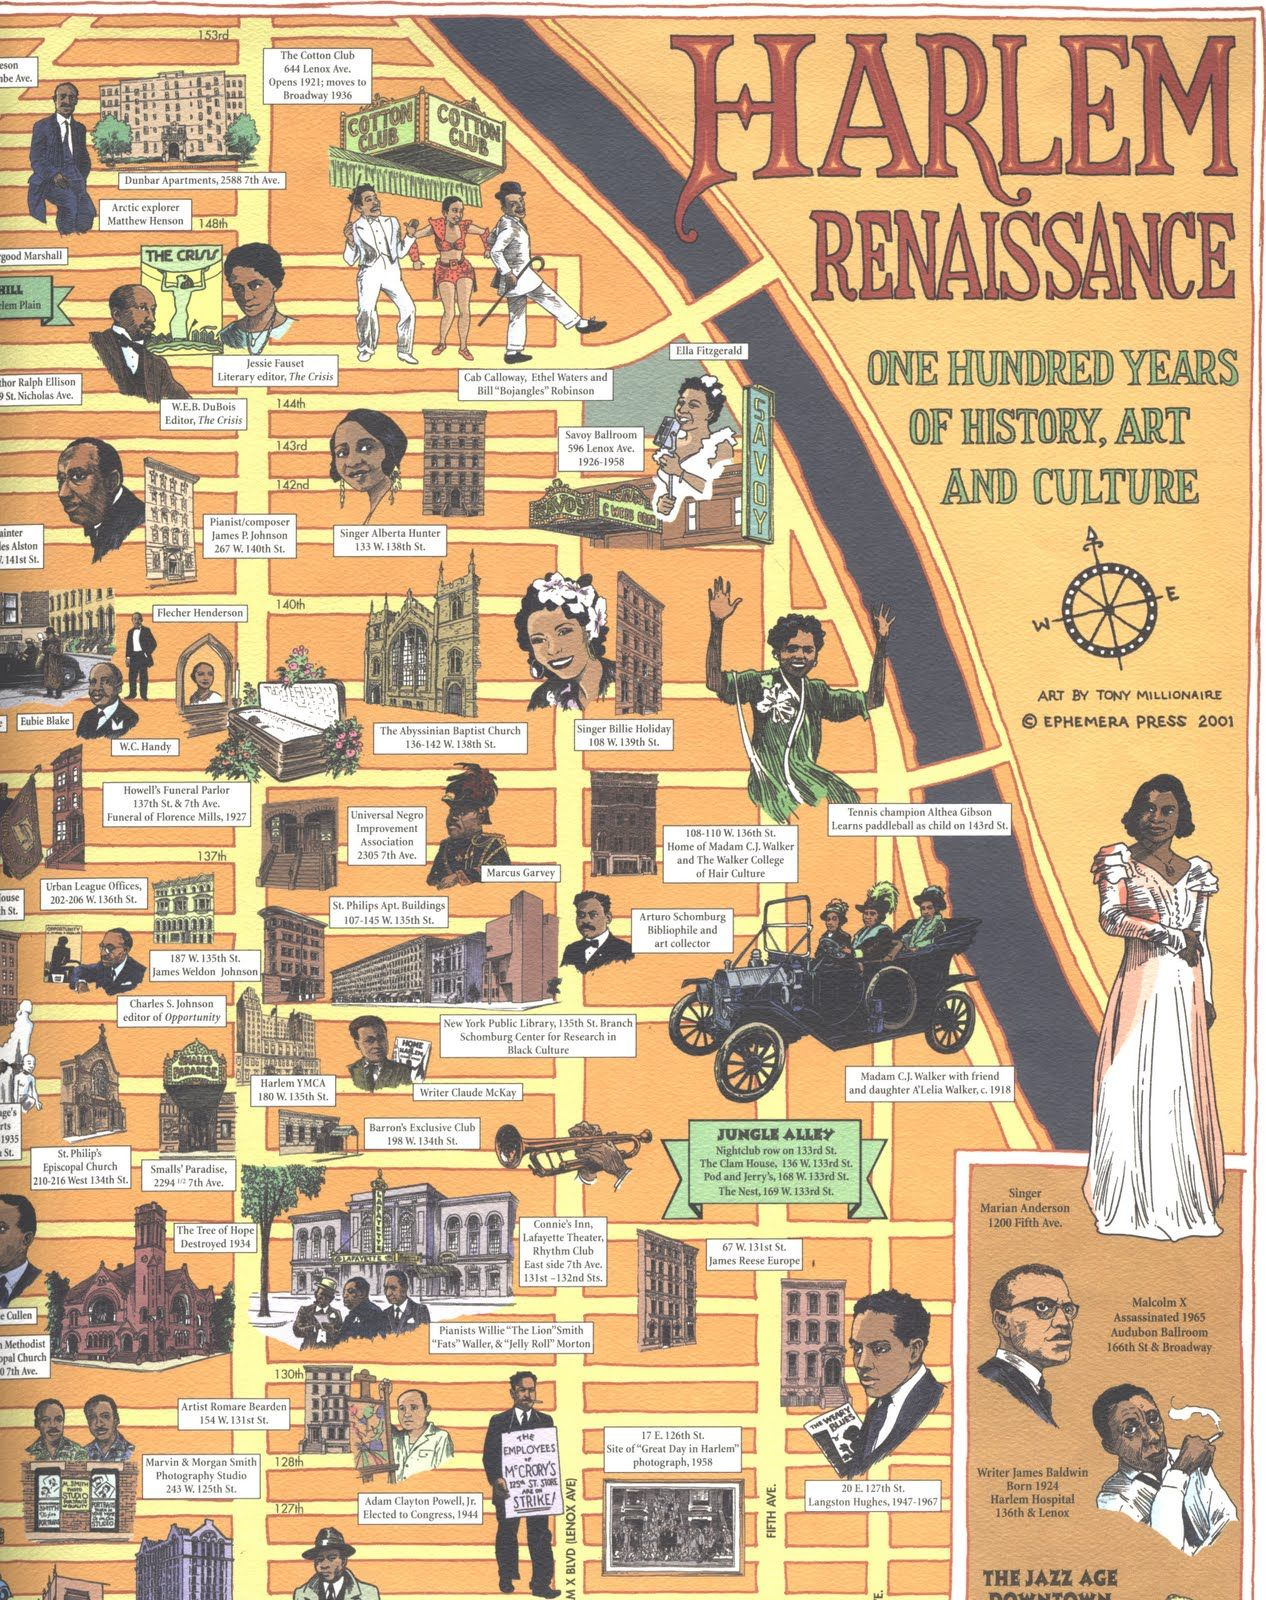 a history of the harlem renaissance A combustible mix of the serious, the ephemeral, the aesthetic, the political, and the risqué, the harlem renaissance was a cultural awakening among african americans during the 1920s and 1930s.